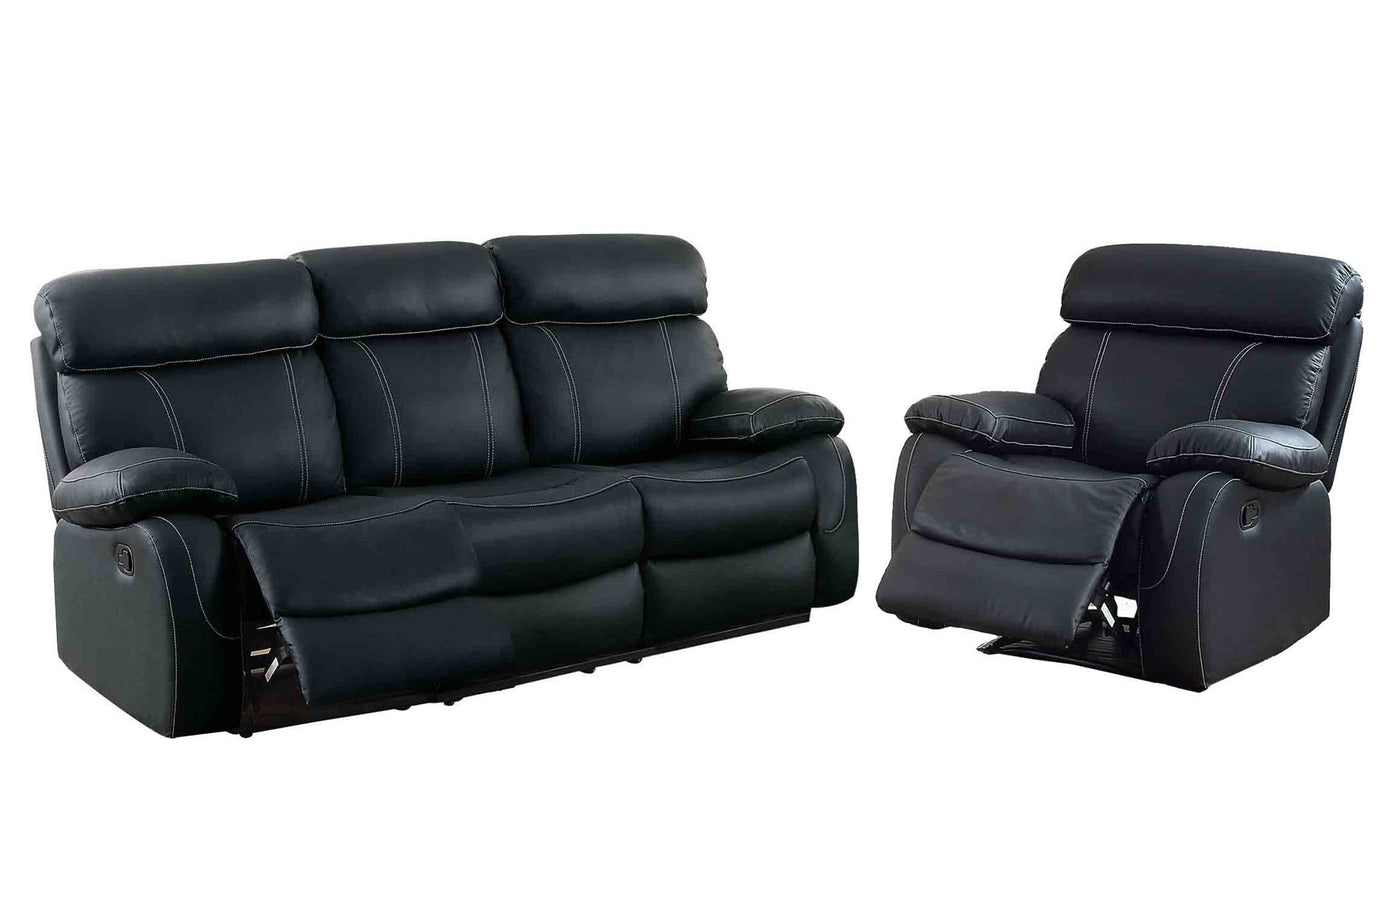 Homelegance Pendu 2pc Double Reclining Sofa Recliner Chair In Black Leather